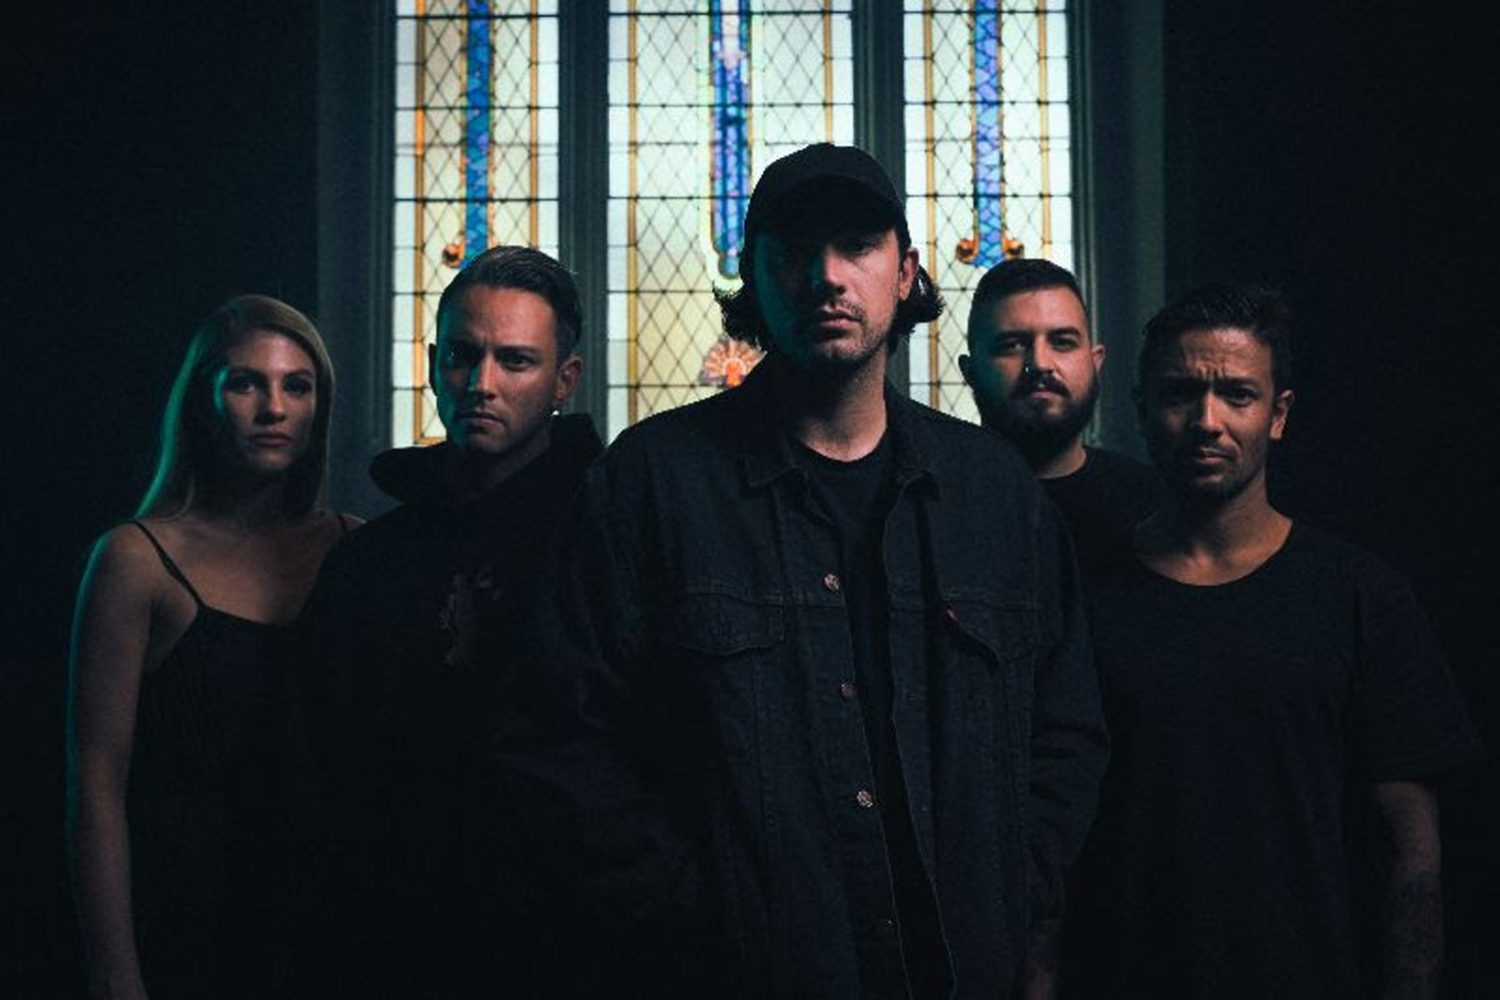 Make Them Suffer have released their new album, 'How To Survive A Funeral', plus a video for 'Bones'